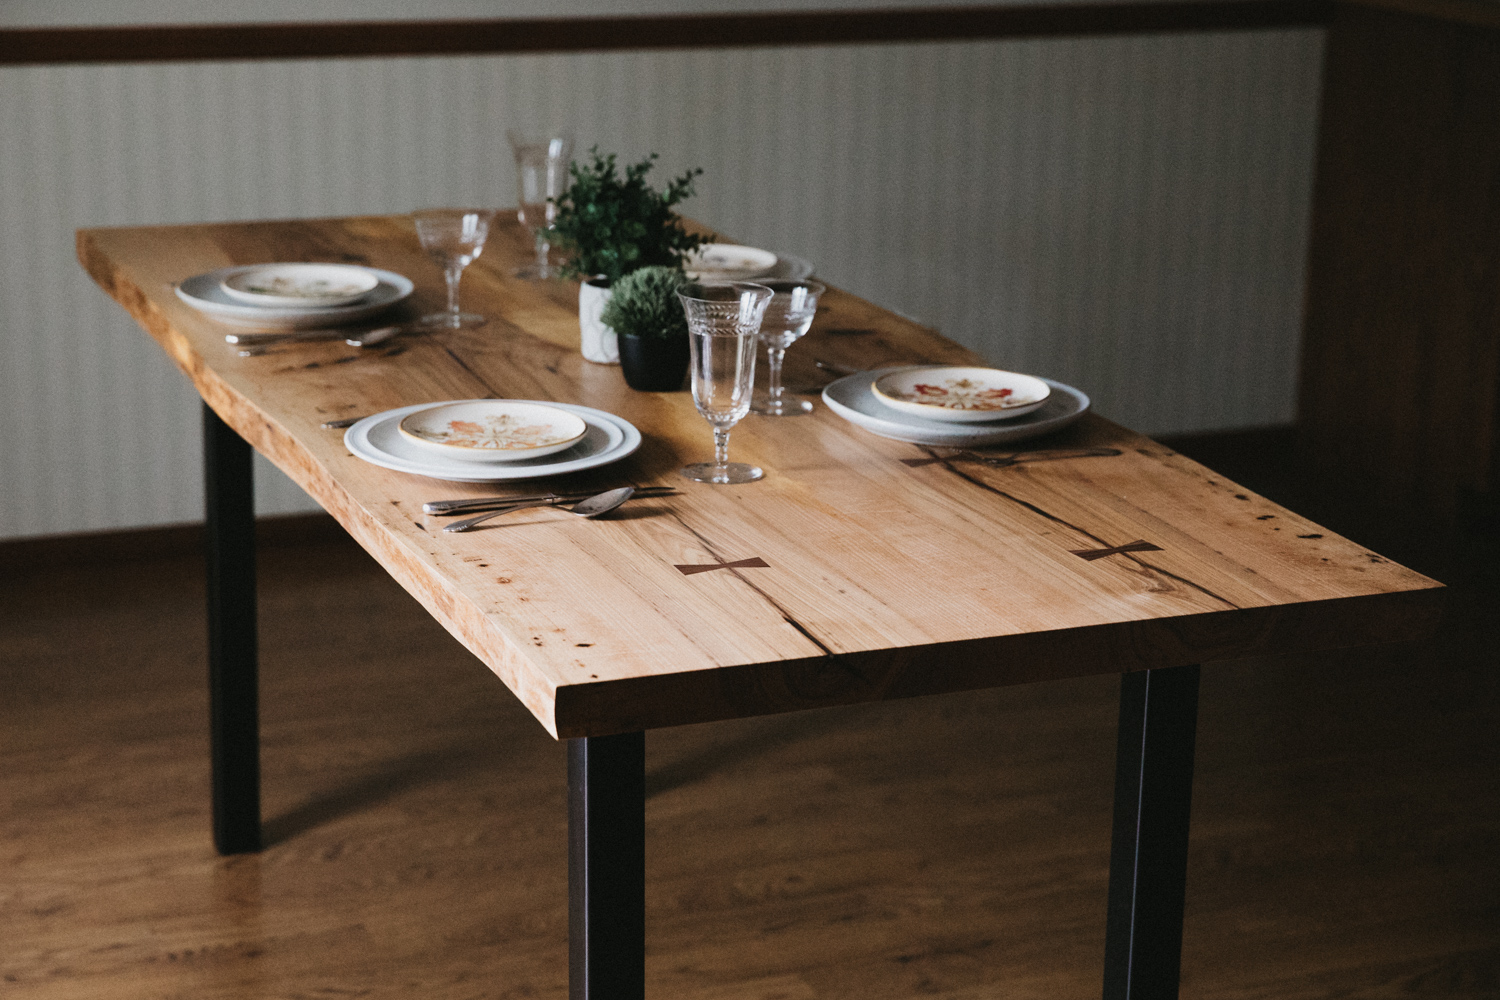 BIG-TOOTH-CO_Live_edge_dining_table_ash (14 of 31).JPG